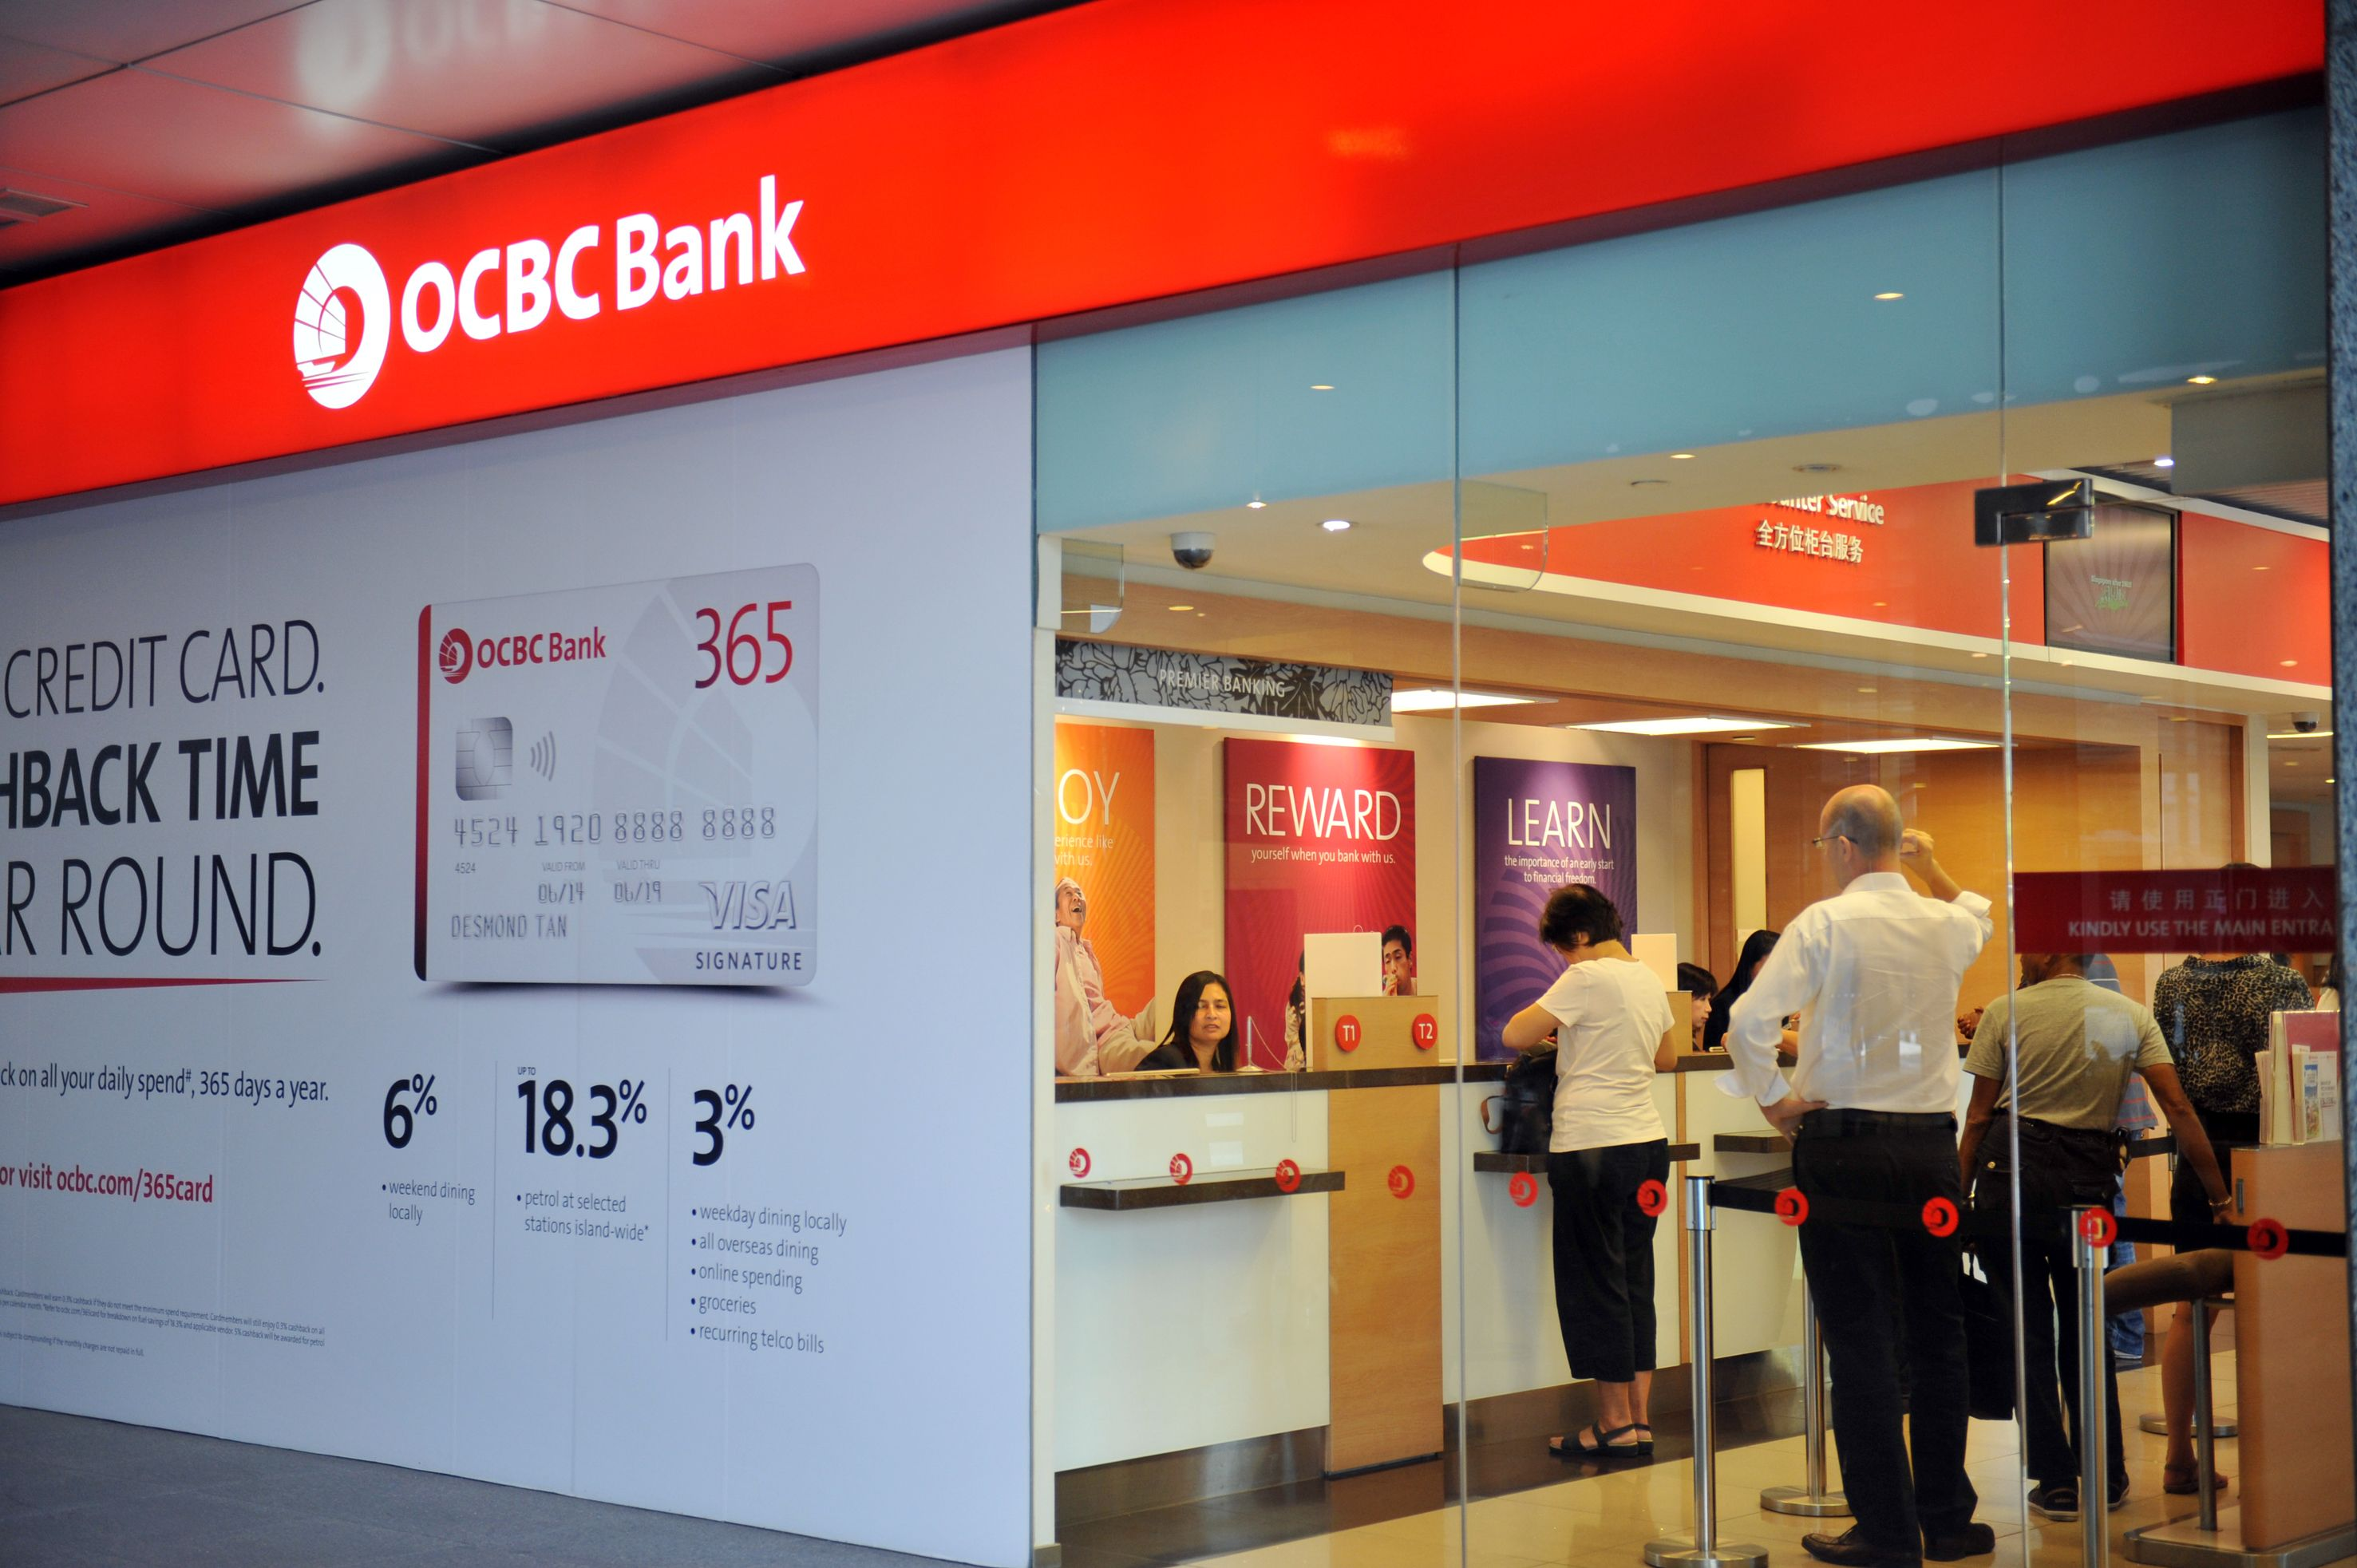 business investment account with OCBC.